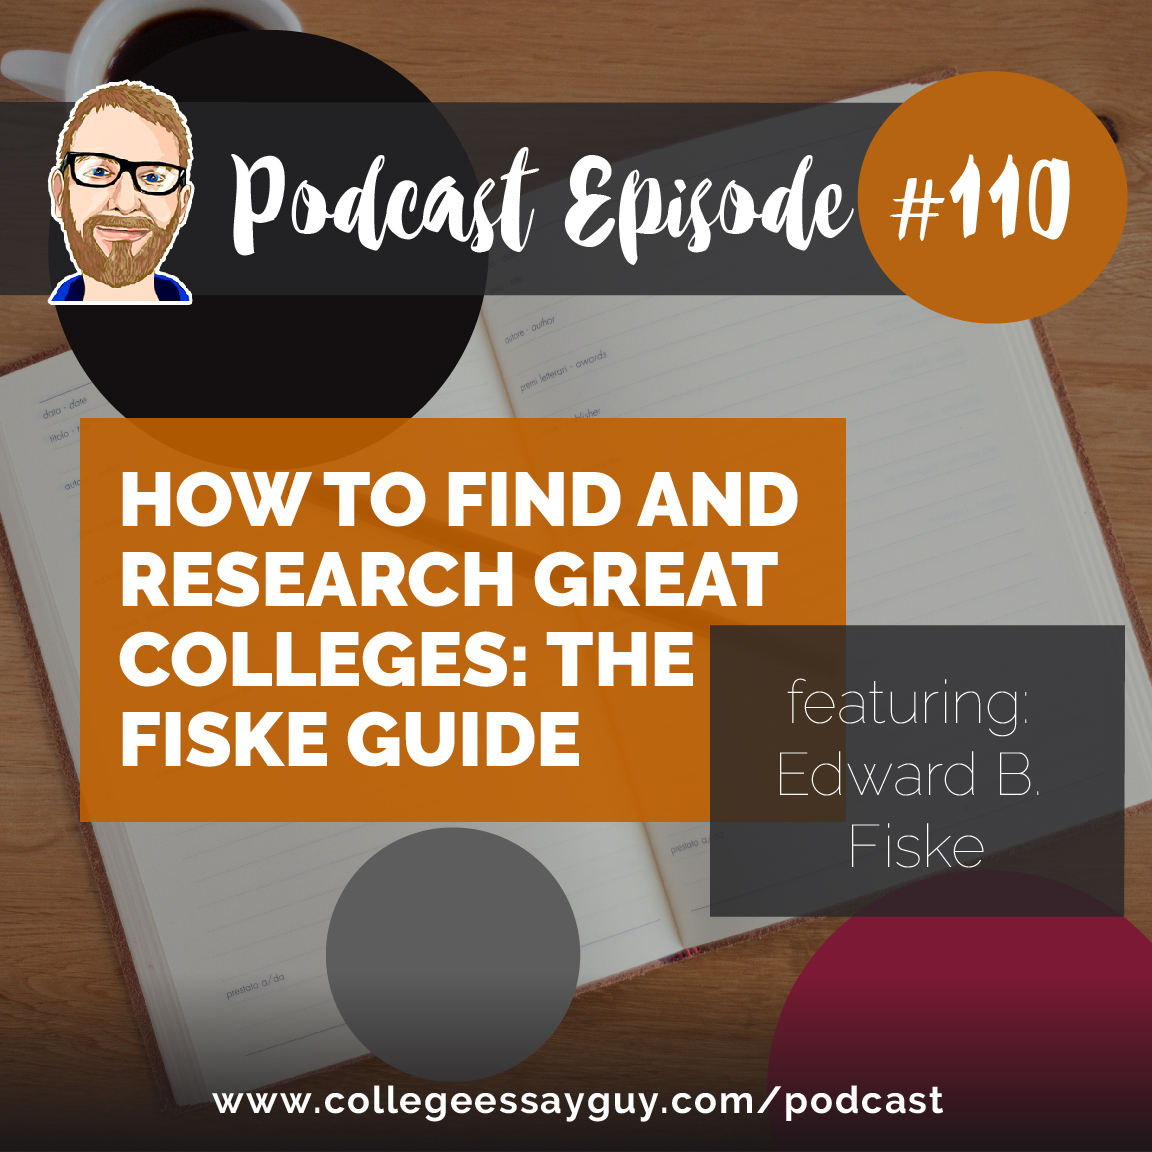 """My guest for this episode is Edward B. Fiske (known to most as """"Ted""""). Ted served as Education Editor for the New York Times from 1974 until 1991, and is well-known to college bound students and their parents as the editor of the Fiske Guide to Colleges, a staple of any high school counselor library and the nation's best-selling college guide."""